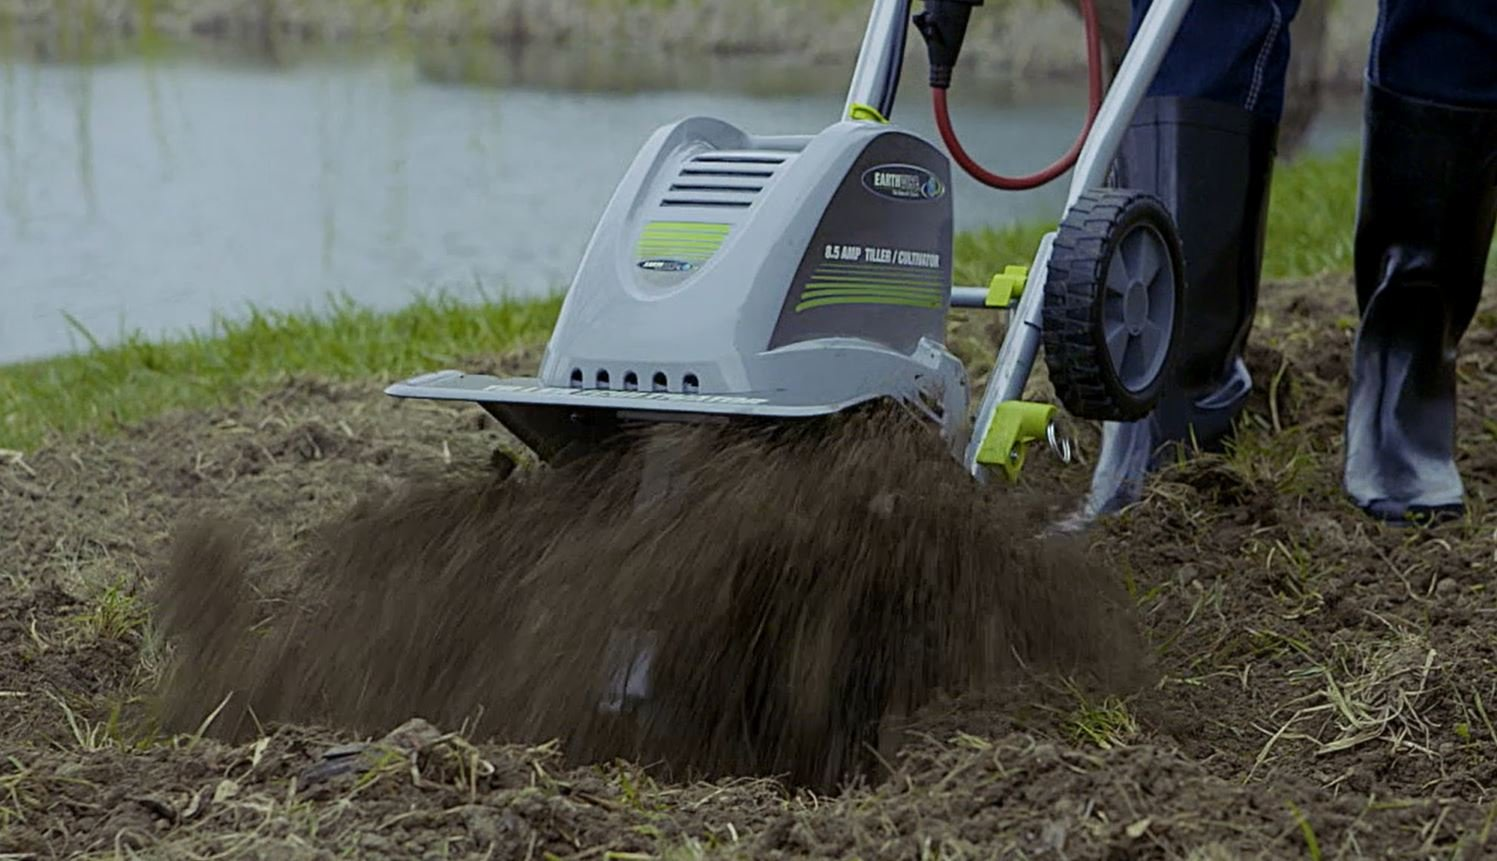 Earthwise TC70001 11-Inch 8.5-Amp Corded Electric Tiller/Cultivator by Earthwise (Image #7)